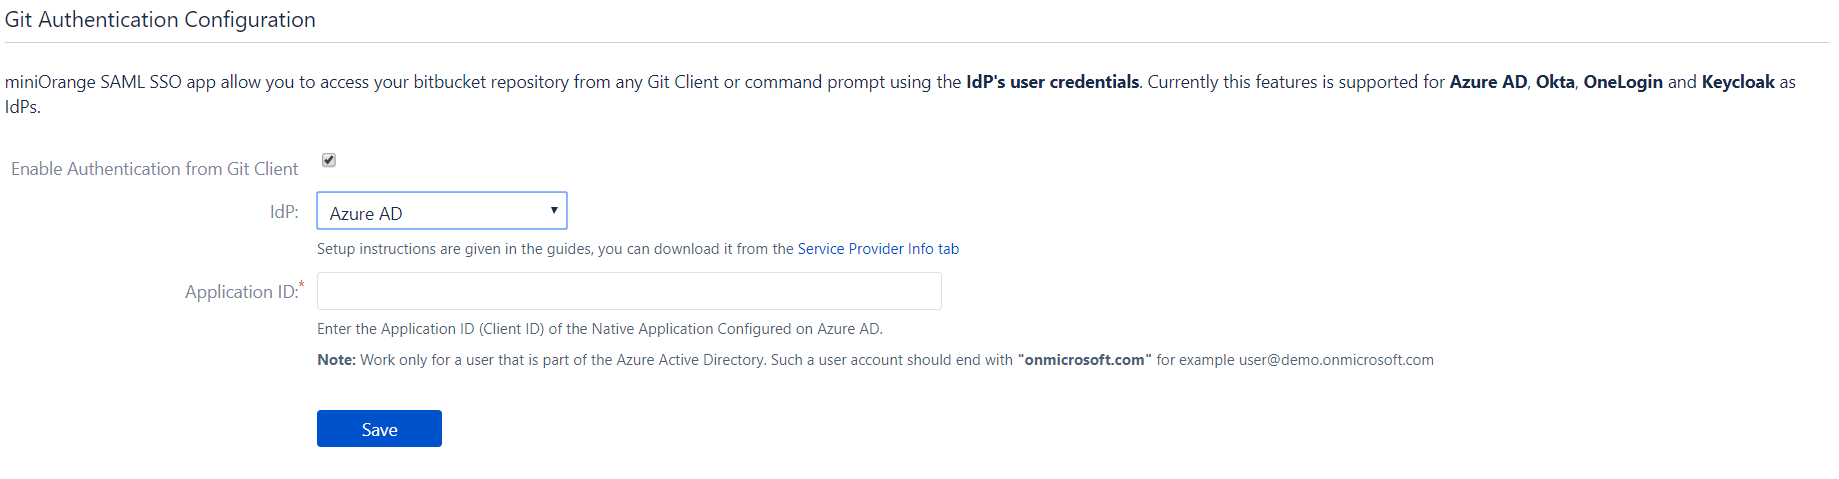 Git Authentication using Azure AD as Identity Provider, Azure AD